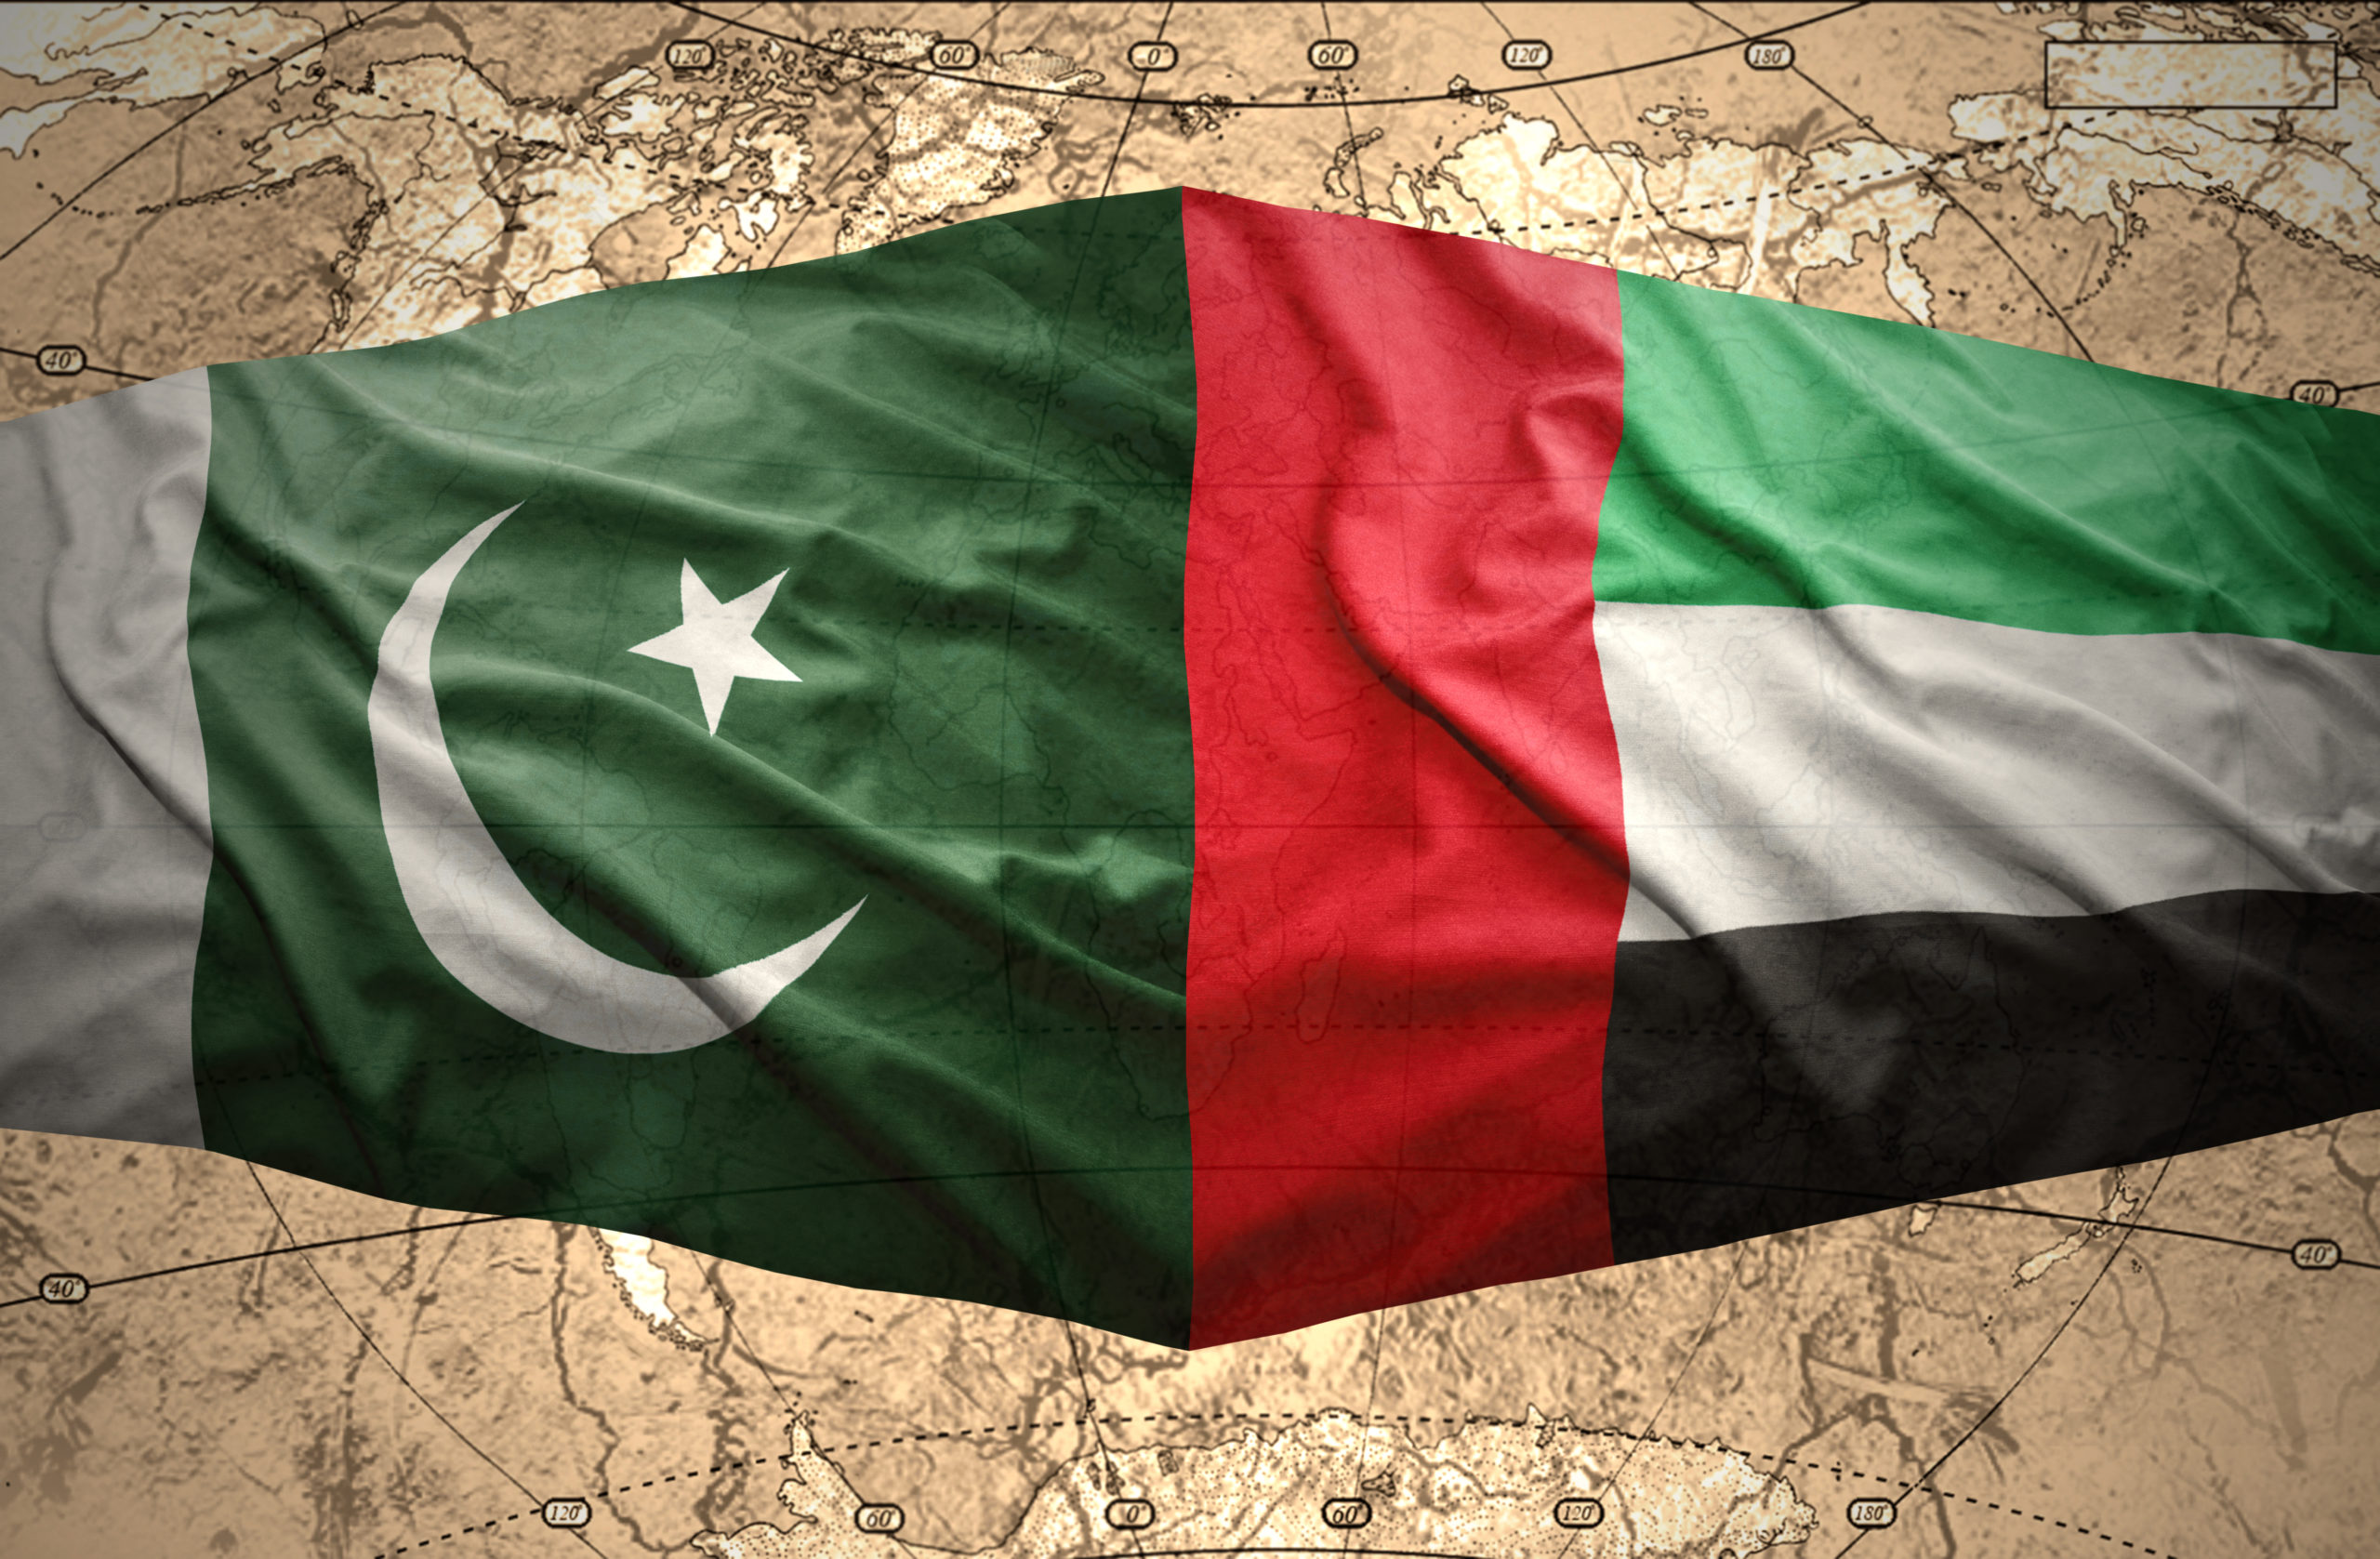 Should Pakistan and the UAE be cautious in growing military ties?